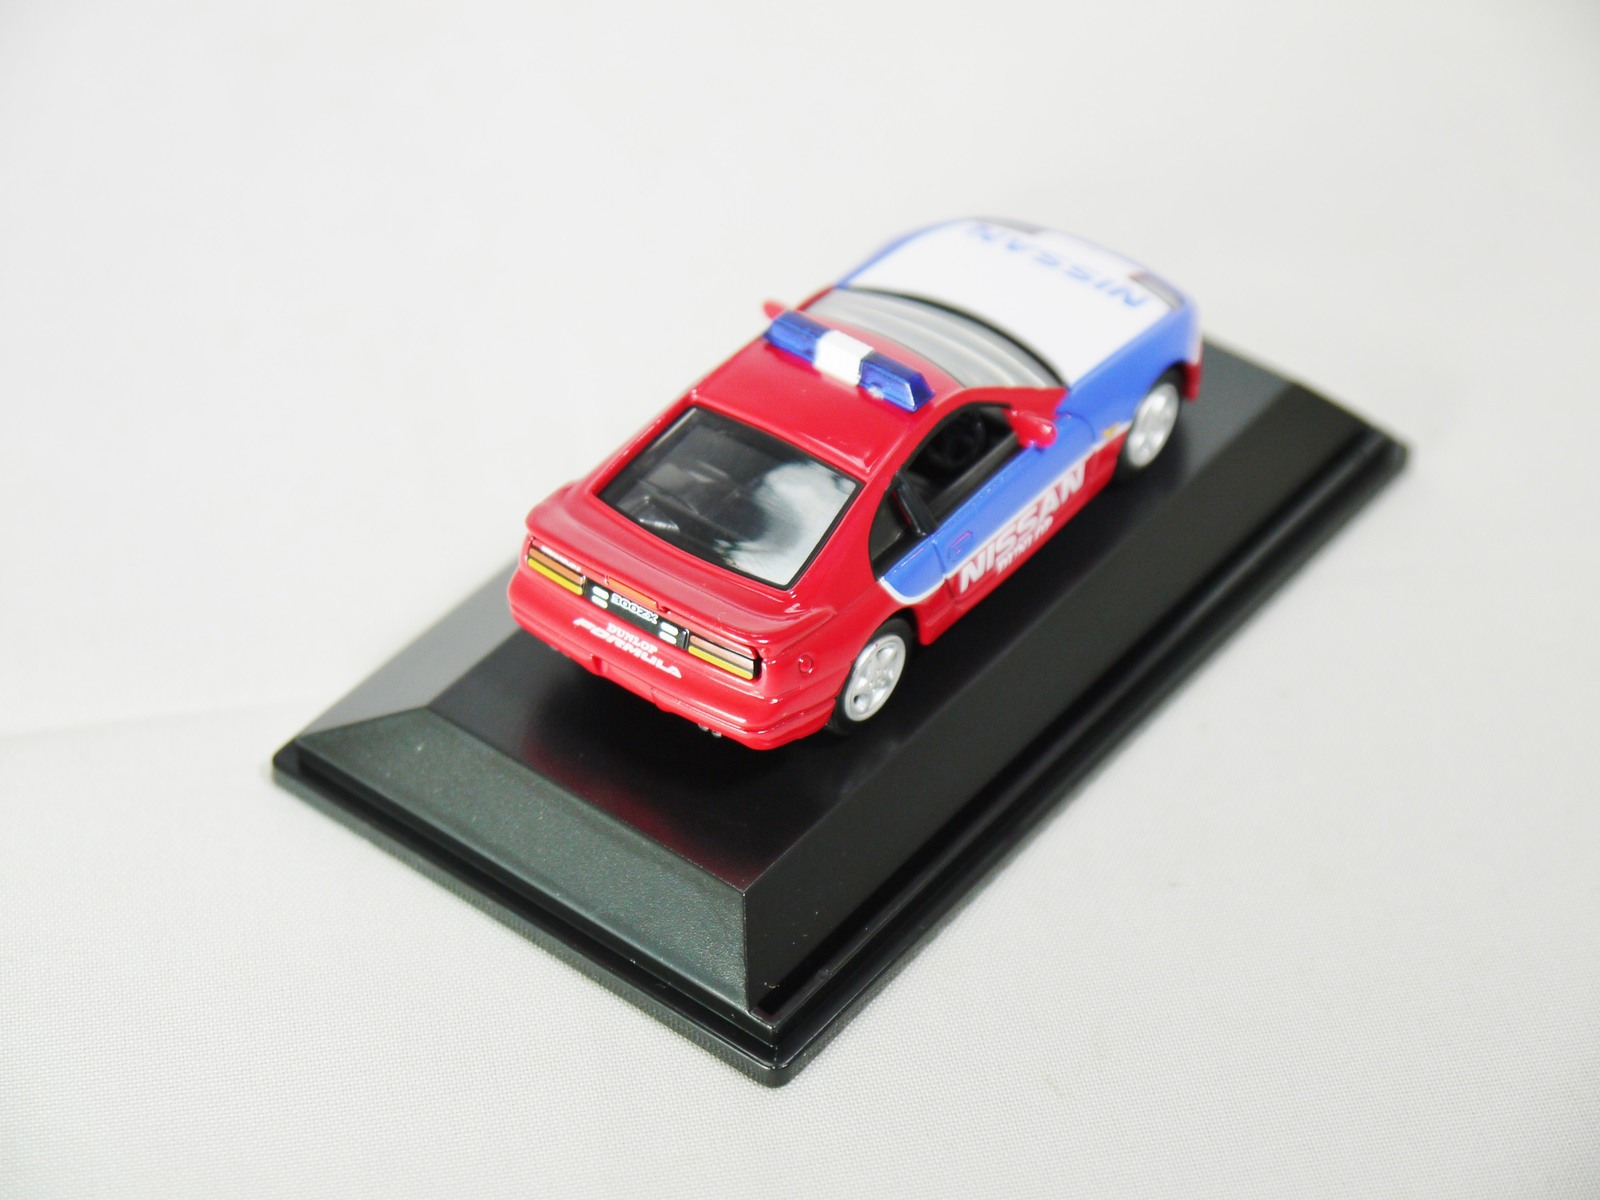 1/72 REAL-X NISSAN RACING CAR FAIRLADY Z 300ZX Z32 Safety Car BLUE & RED FIGURE